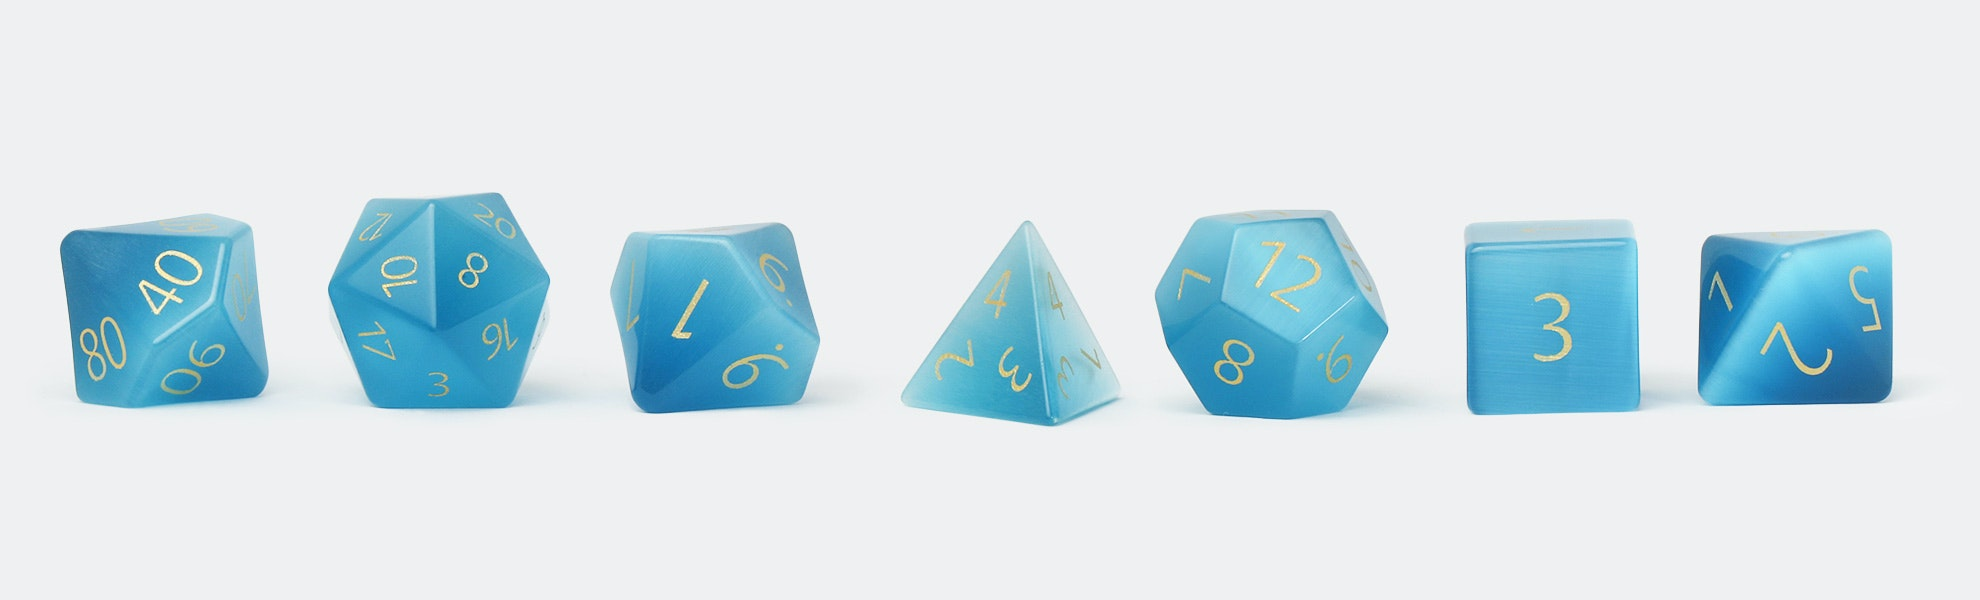 MDG Engraved Aquamarine 16mm Polyhedral Dice Set